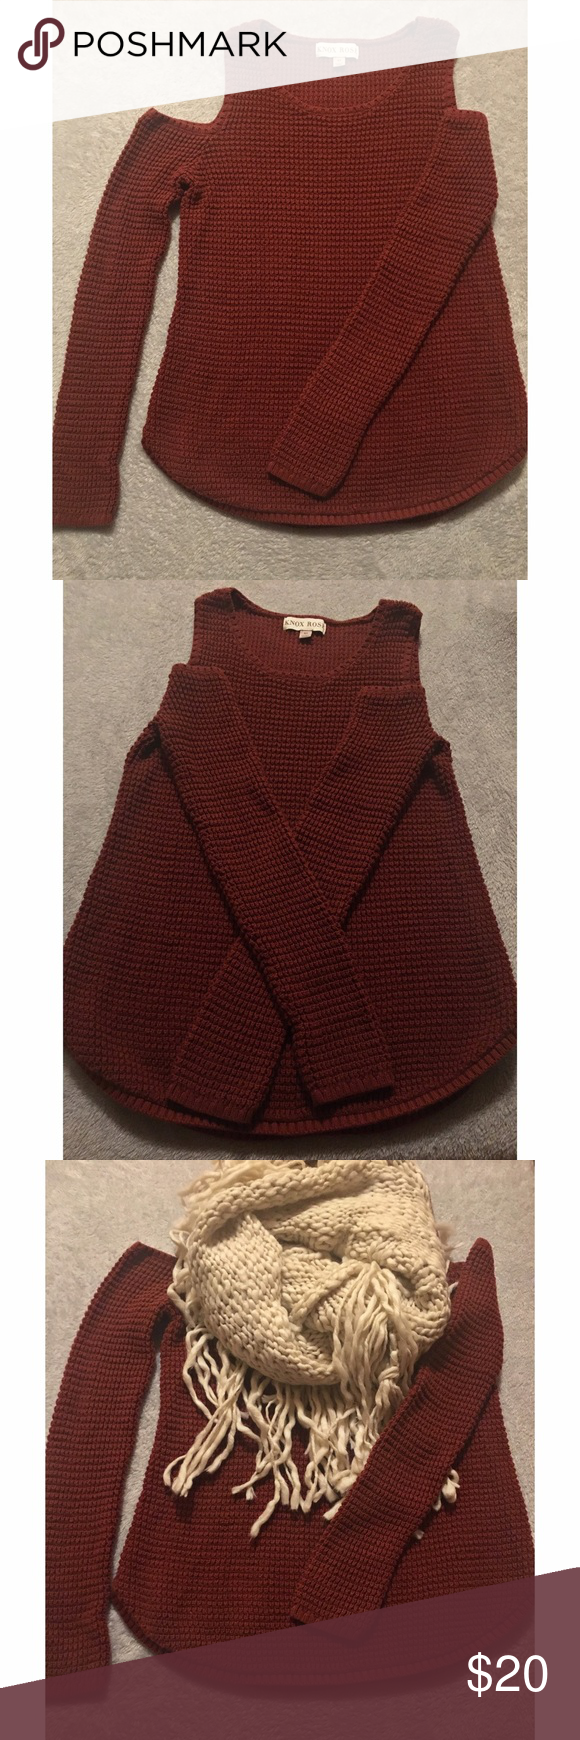 XS-Knox Rose Cold Shoulder Sweater (Burnt Orange) Shoulder cut out, worn twice (like new) excellent condition, Burnt Orange/Reddish color, 100% cotton *scarf sold separately* Knox Rose Sweaters